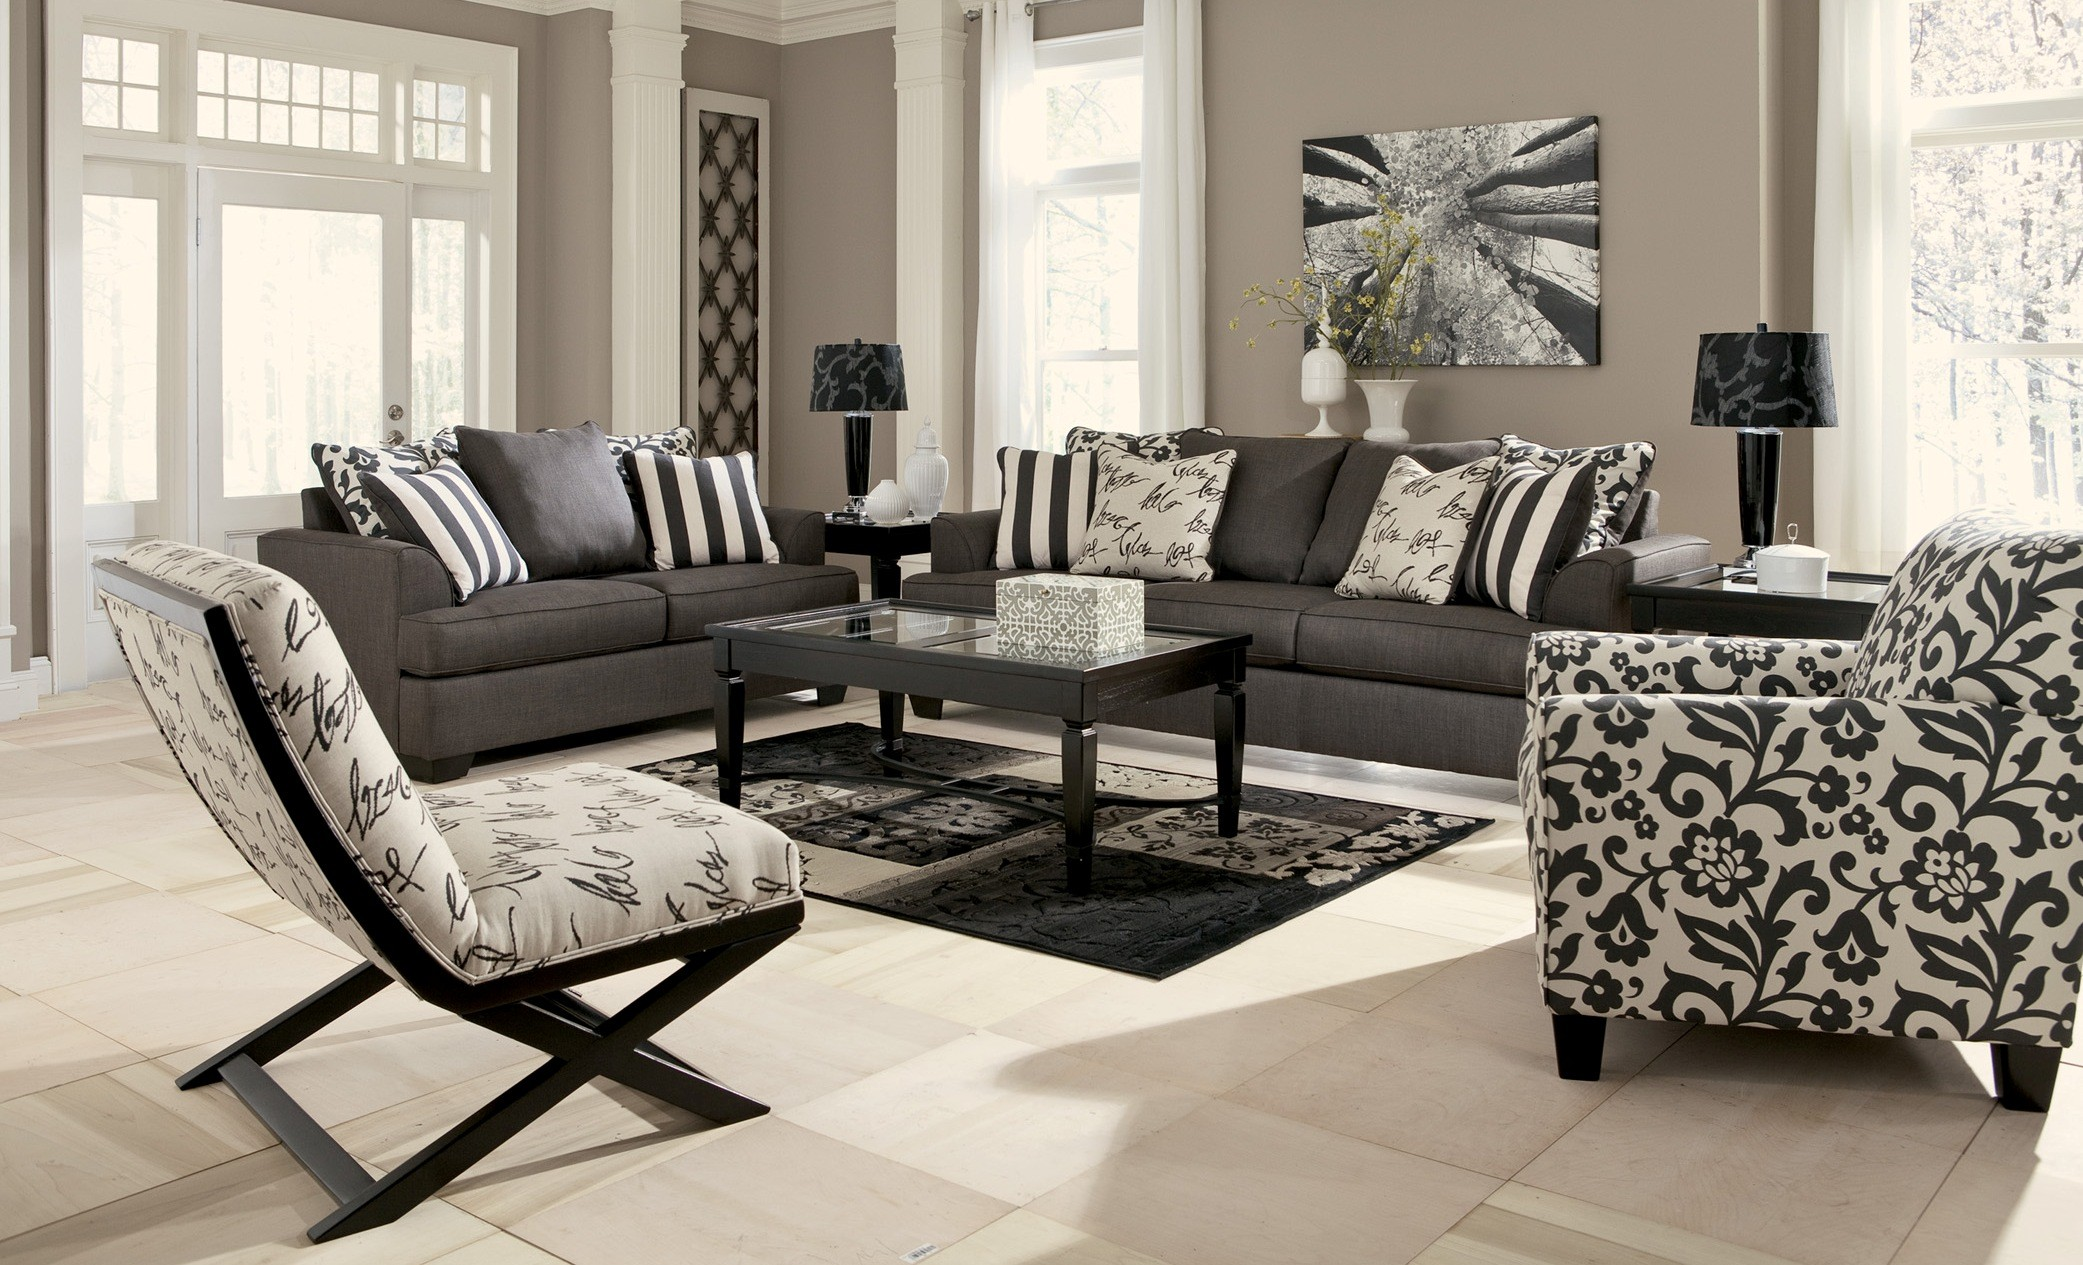 living room set ashley furniture levon charcoal living room set from 73403 21261